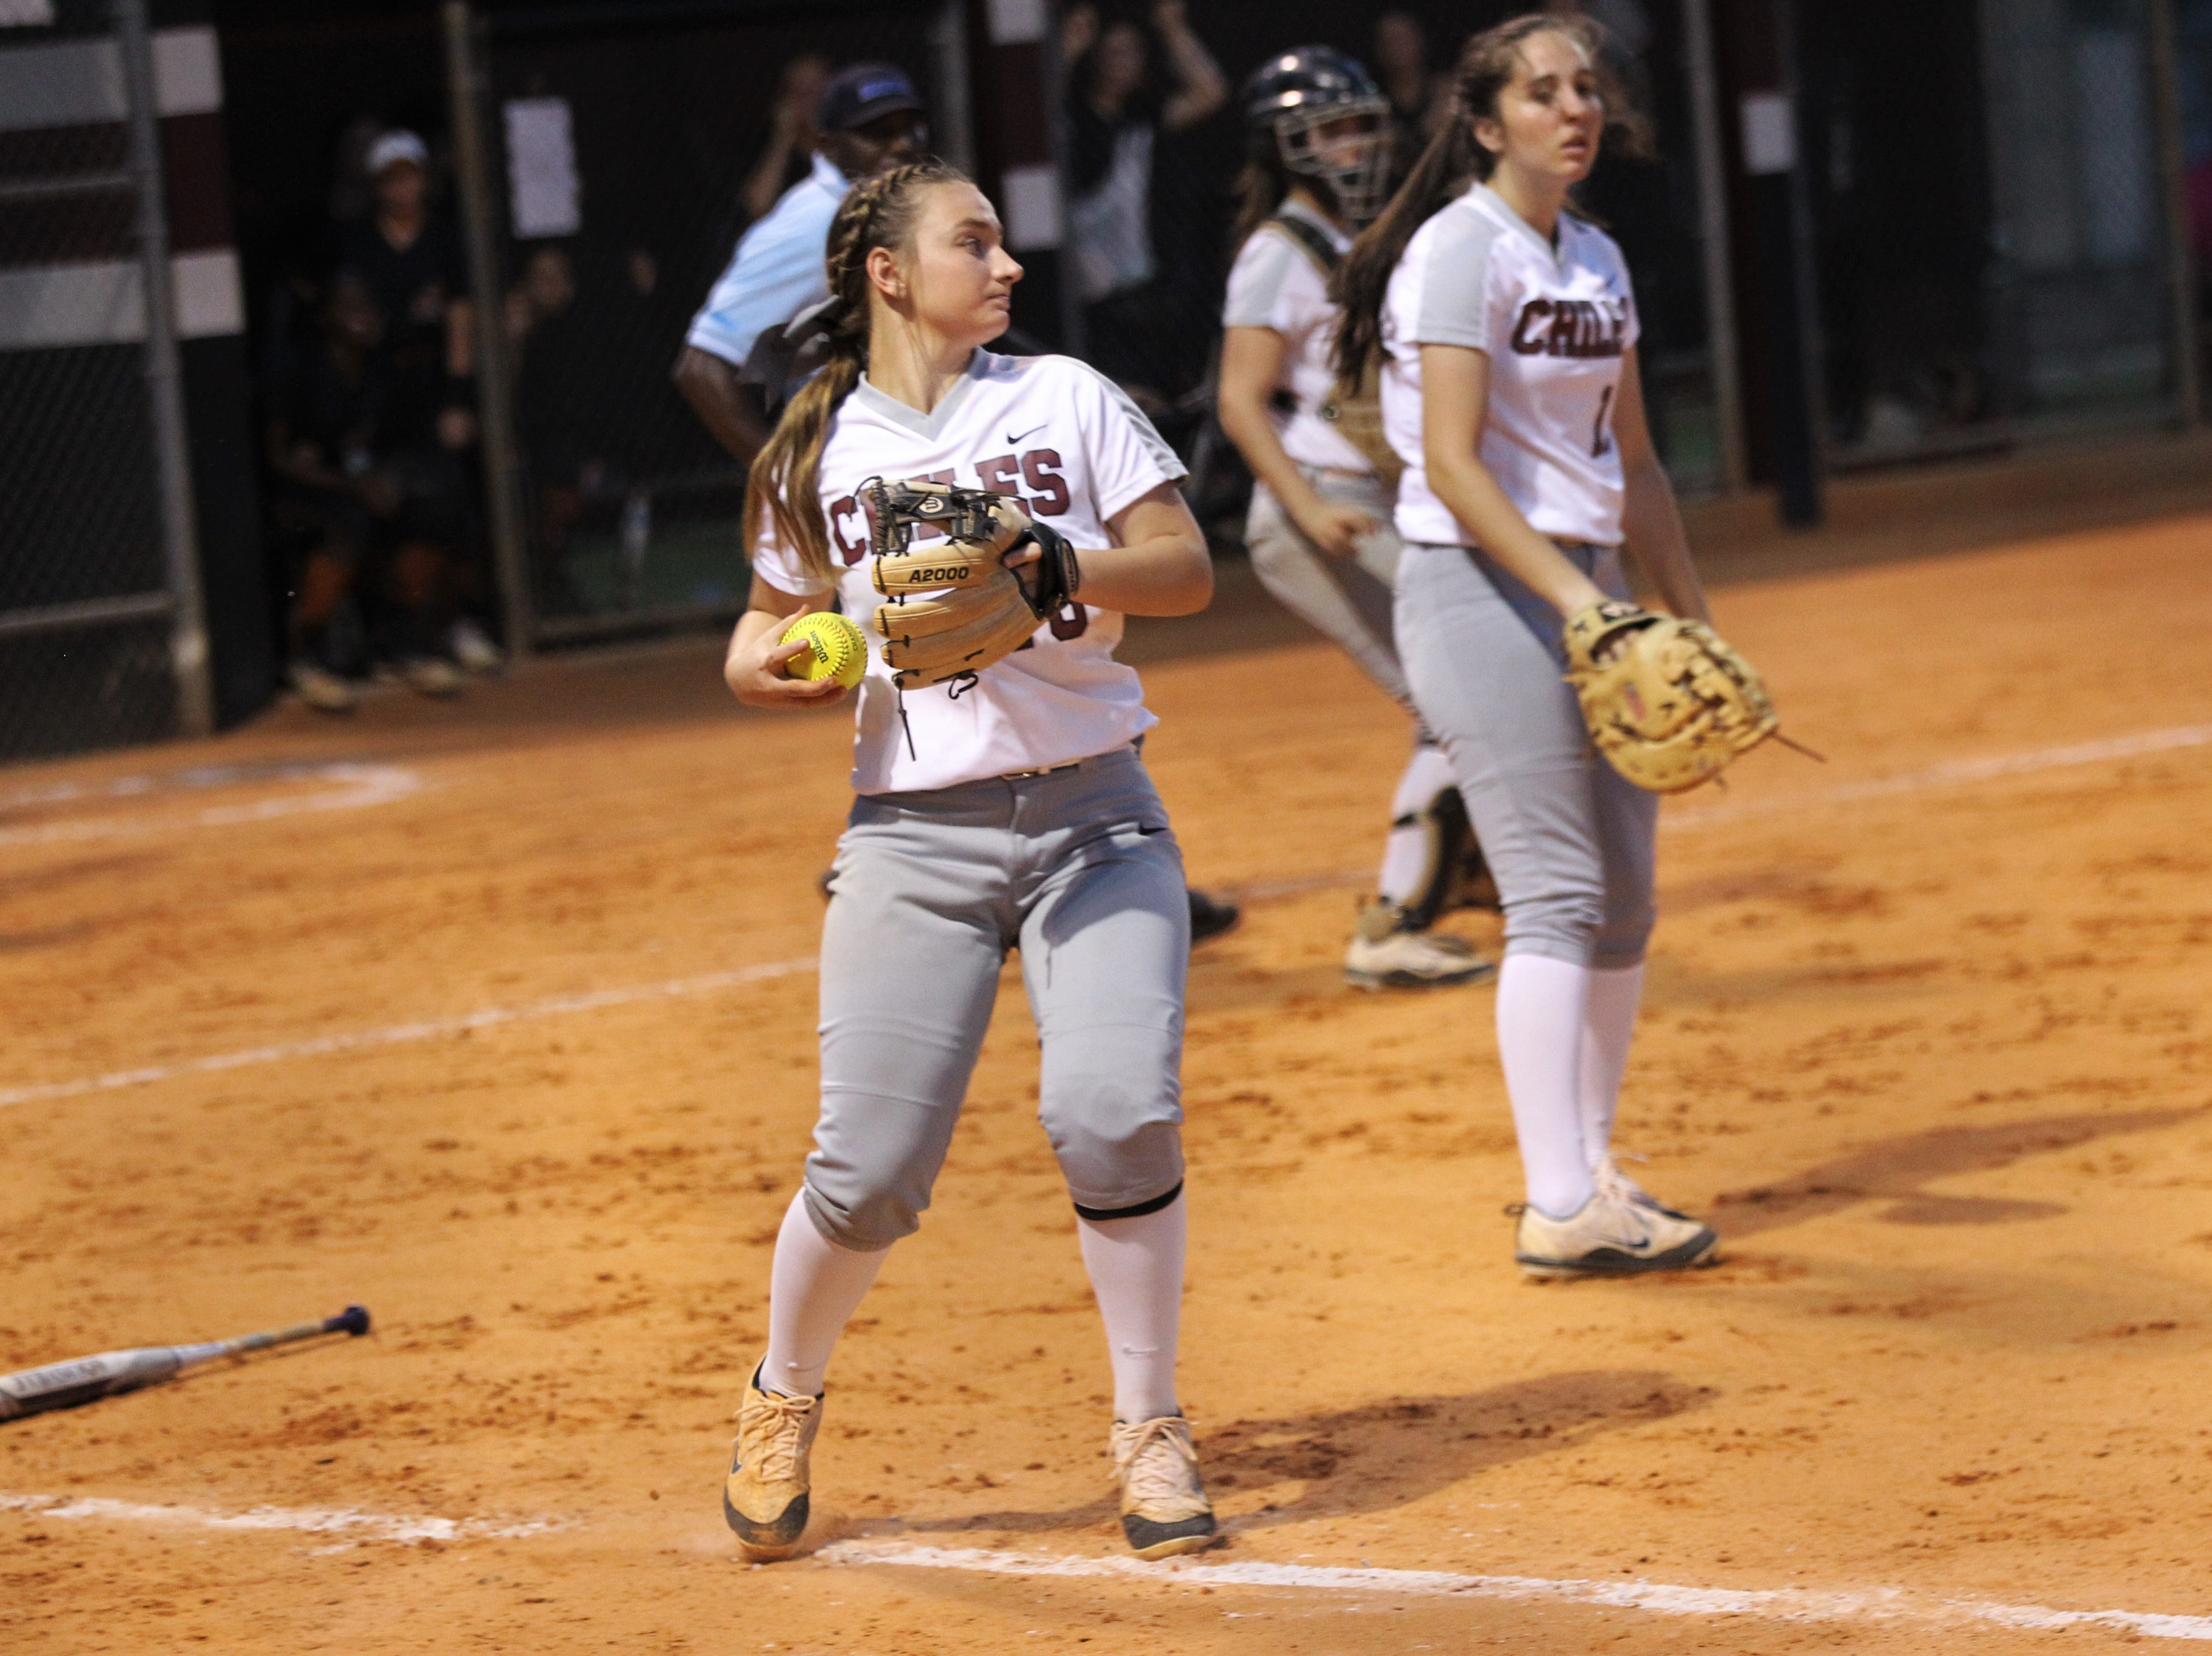 Chiles third baseman Sierra Jevyak fields a bunt but no play can be made as the Timberwolves beat Atlantic Coast 6-4 during a Region 1-8A quarterfinal softball game on Wednesday, May 8, 2019.